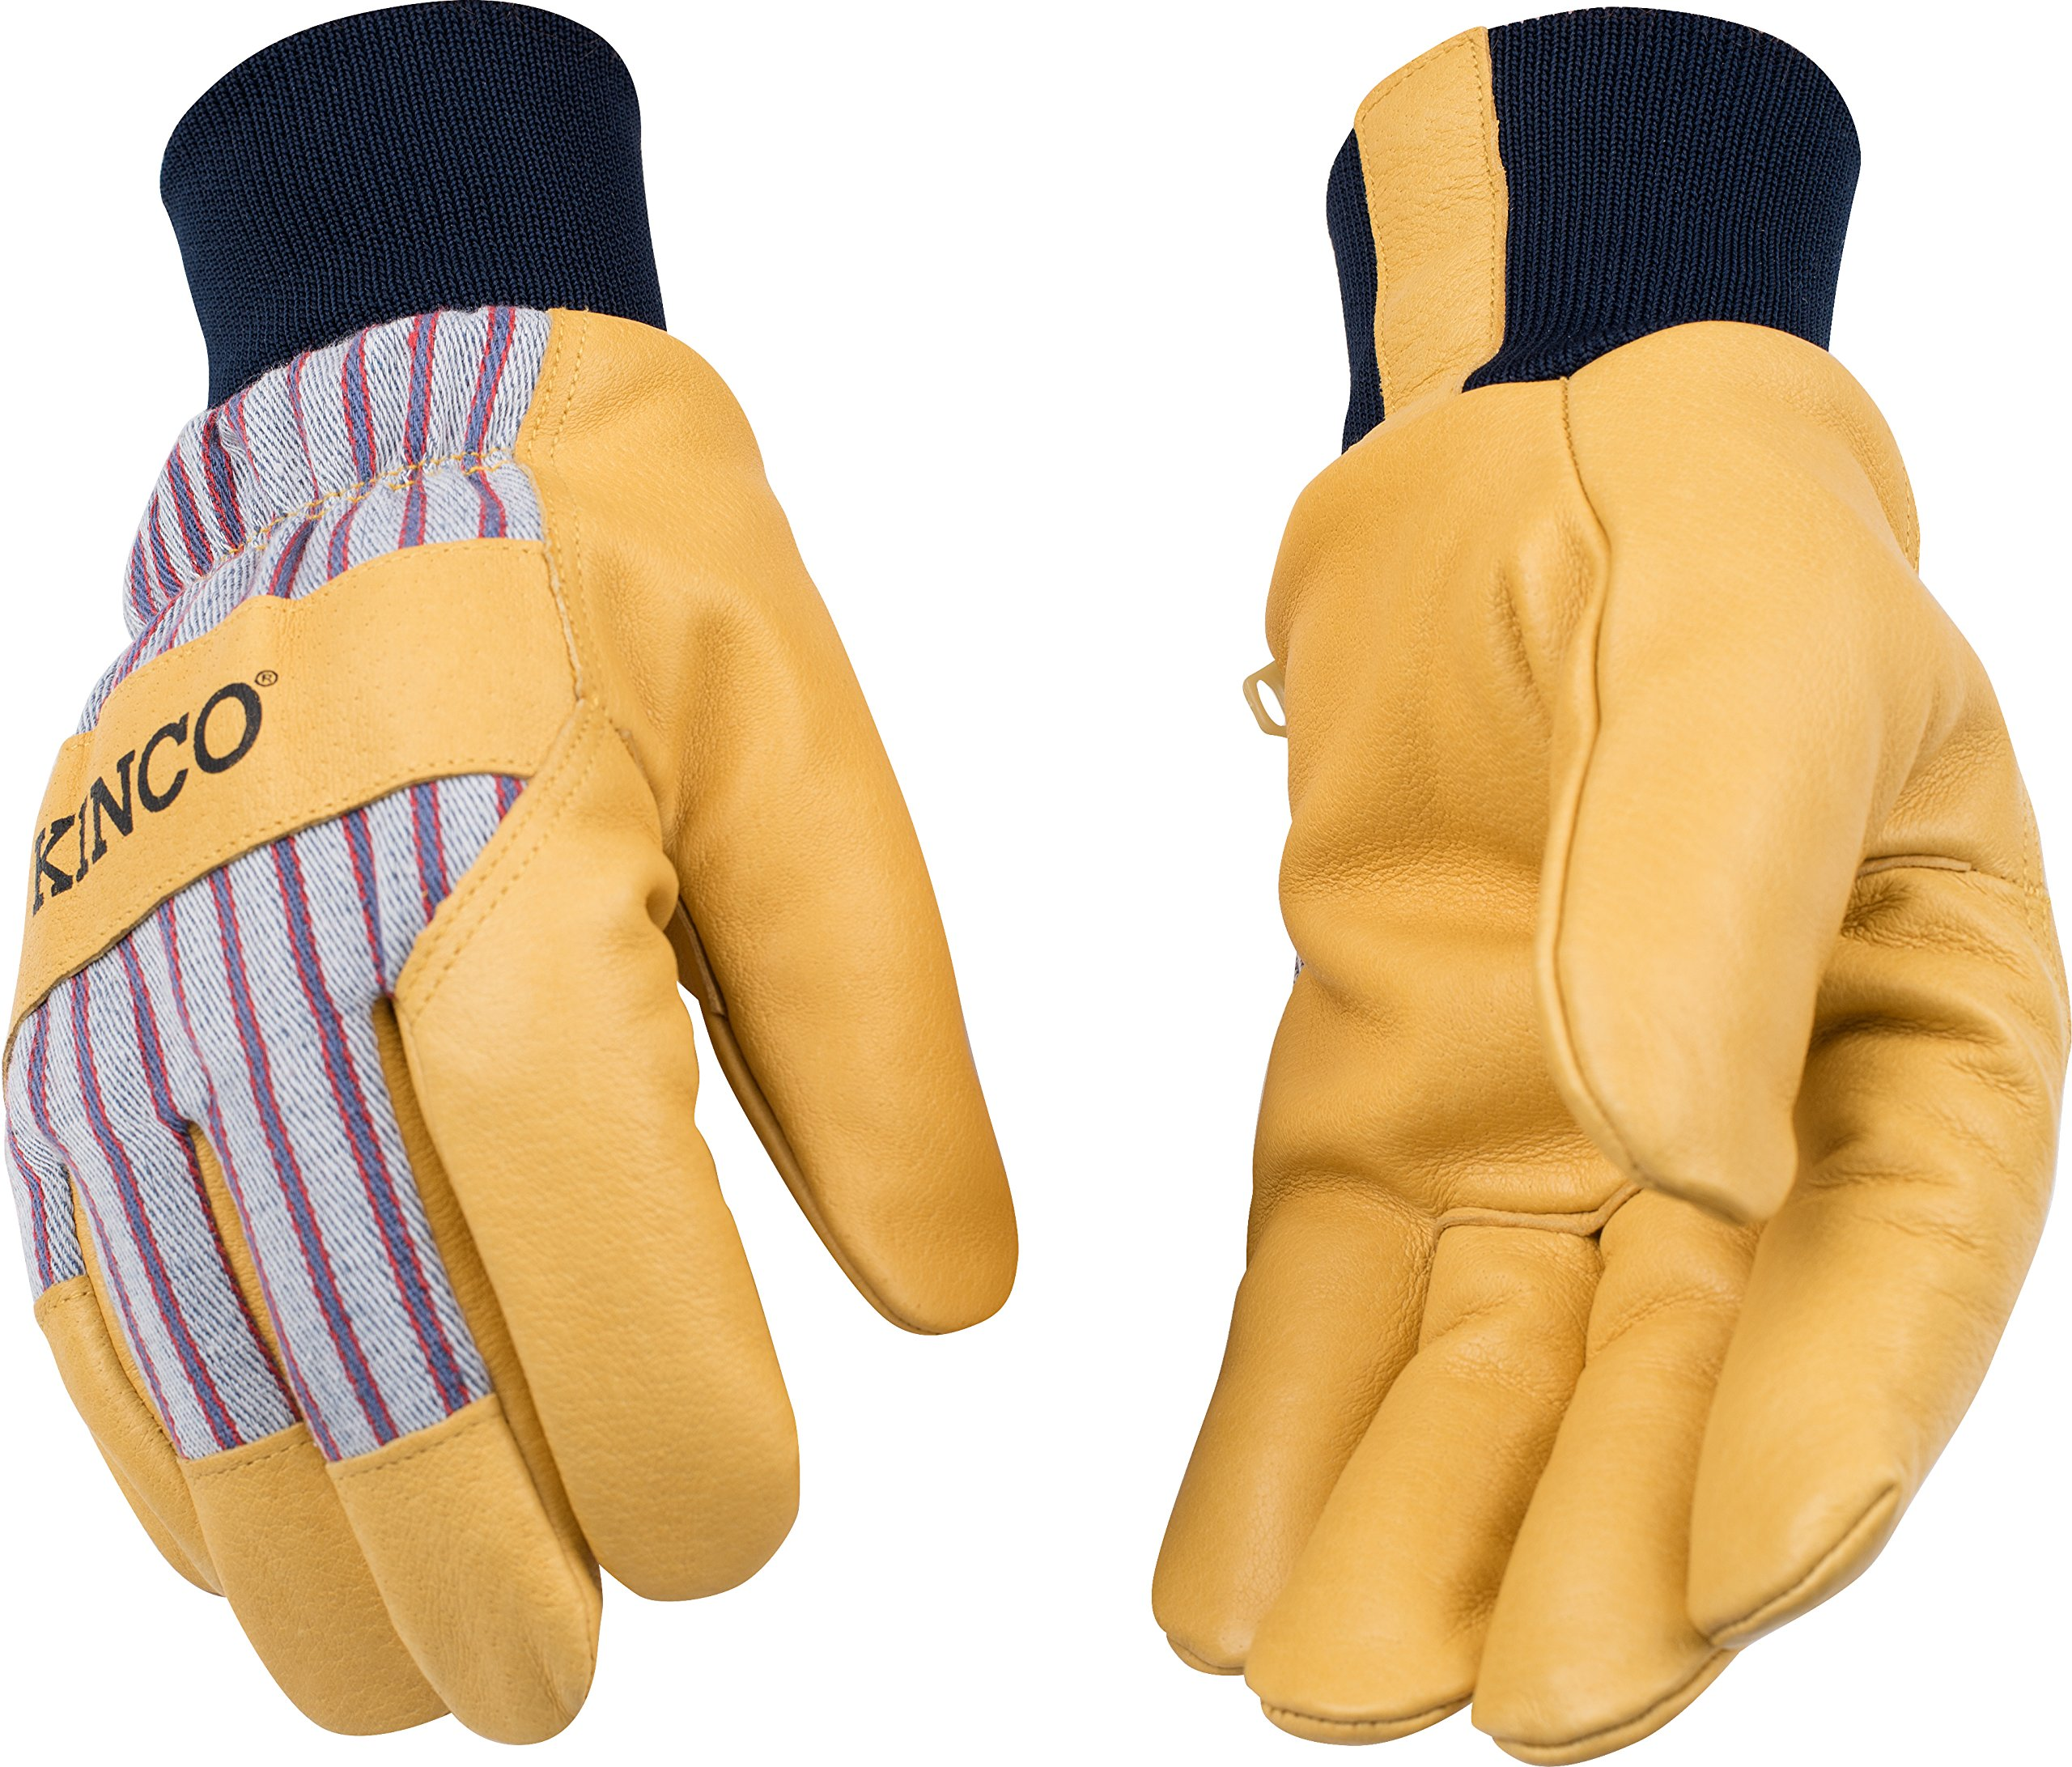 Kinco 1927KW Lined Grain Pigskin Leather Glove with Knit Wrist, Work, Large, Palomino (Pack of 6 Pairs)